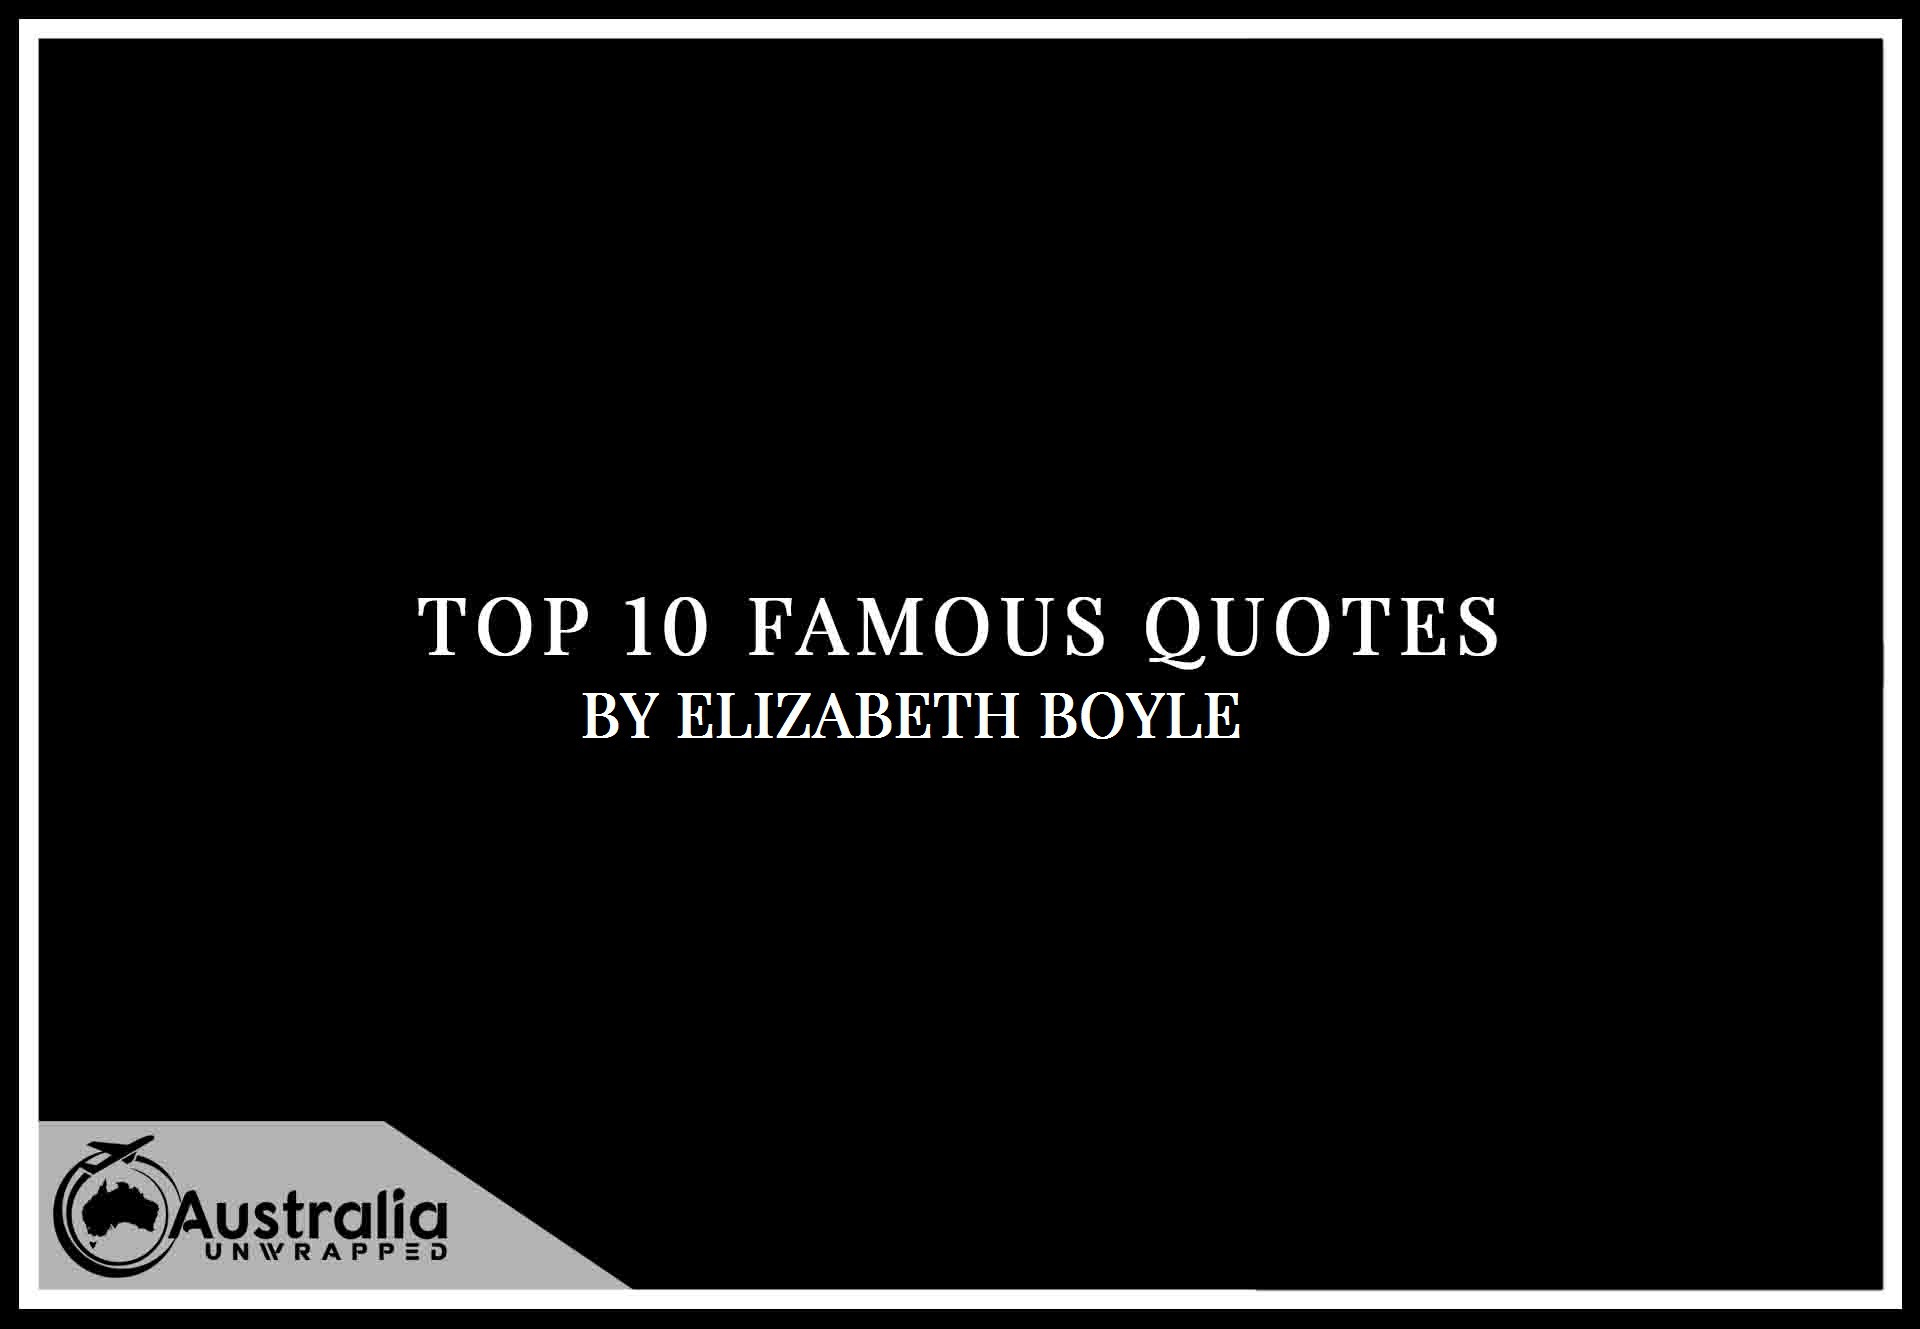 Elizabeth Boyle's Top 10 Popular and Famous Quotes